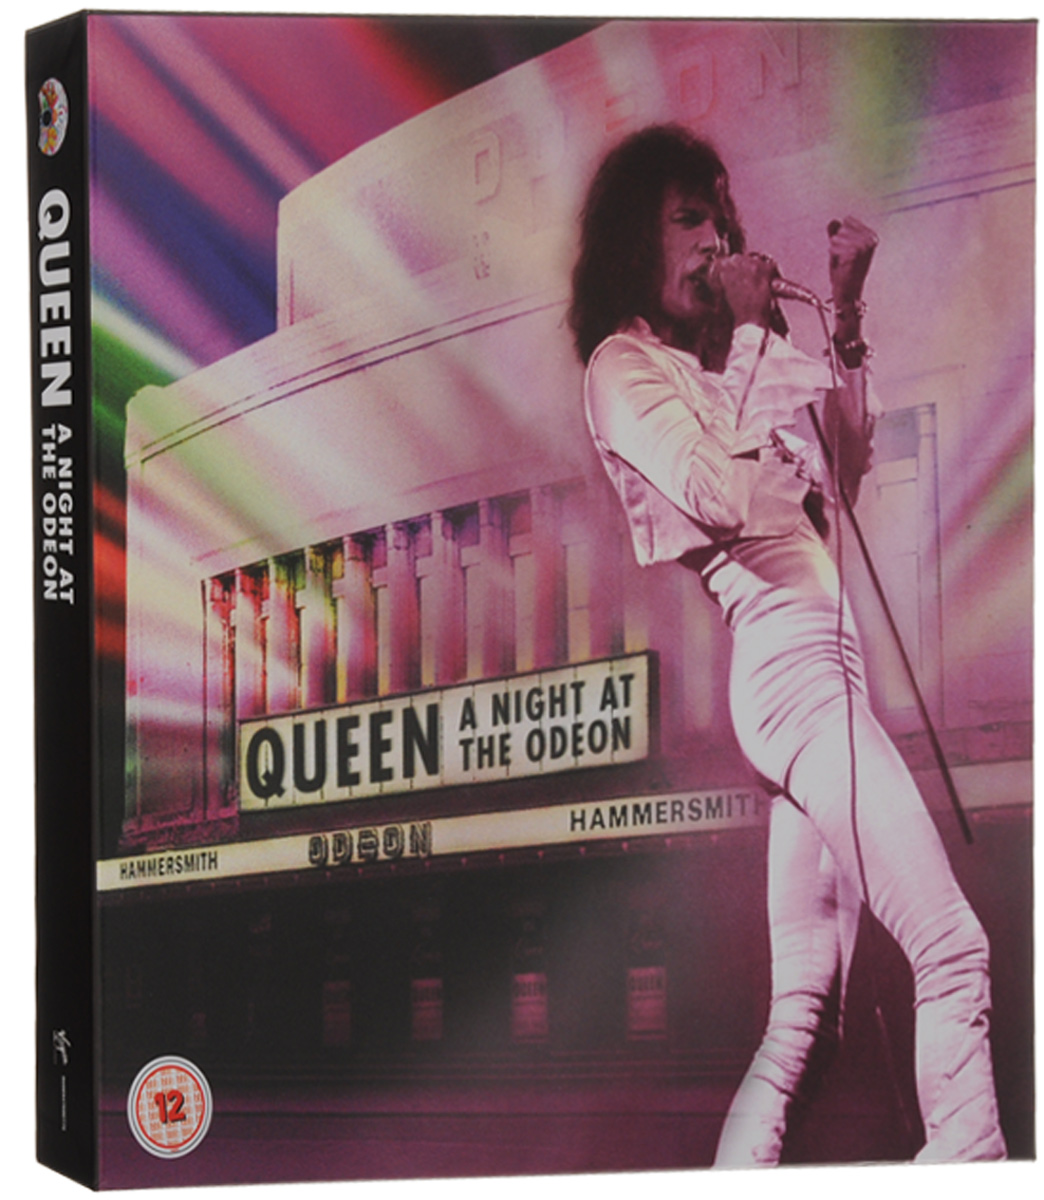 Queen Queen. A Night At The Odeon. Anniversary Limited Edition (CD + LP + DVD + Blu-ray) queen queen a night at the odeon anniversary limited edition cd lp dvd blu ray